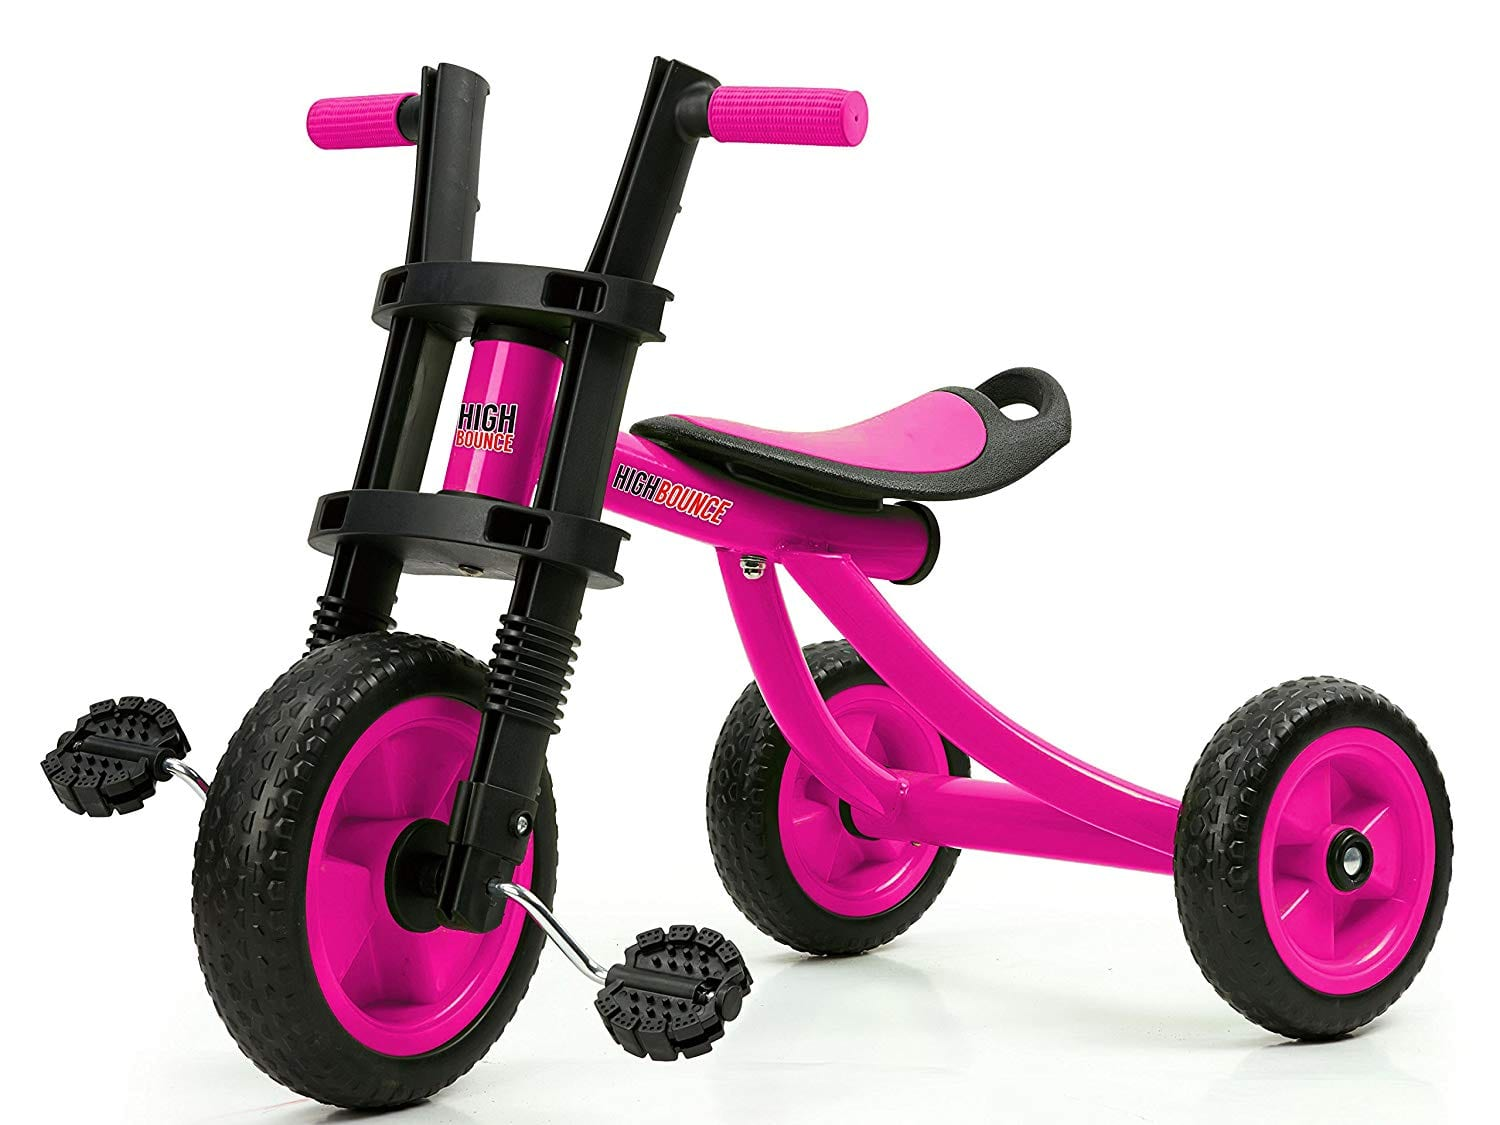 High bounce extra tall tricycle